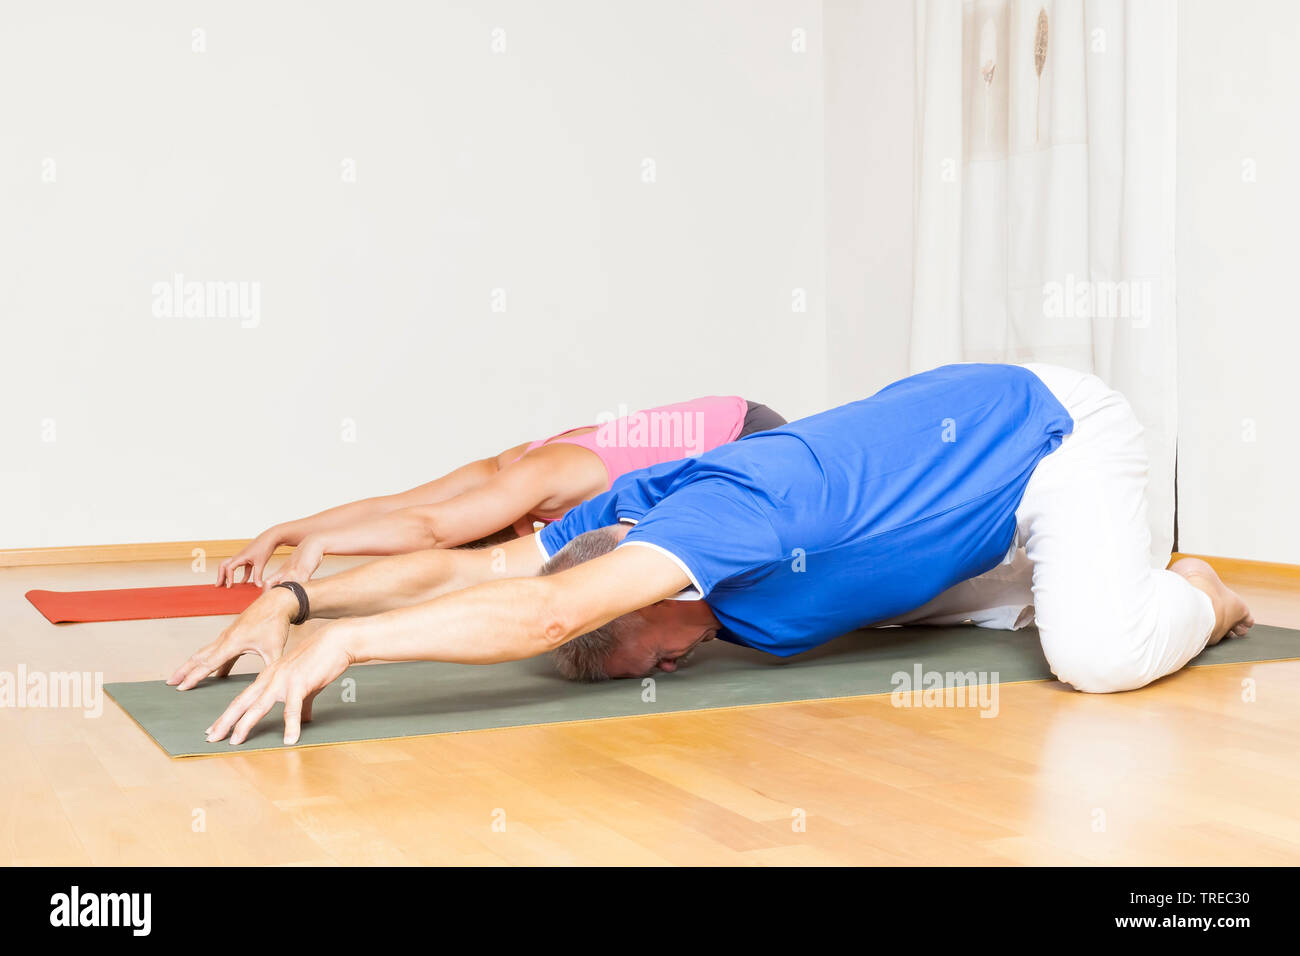 Frau und Mann machen Yoga-Uebungen, Europa | woman and man doing yoga, Europe | BLWS522576.jpg [ (c) blickwinkel/McPHOTO/M. Gann Tel. +49 (0)2302-2793 Stock Photo